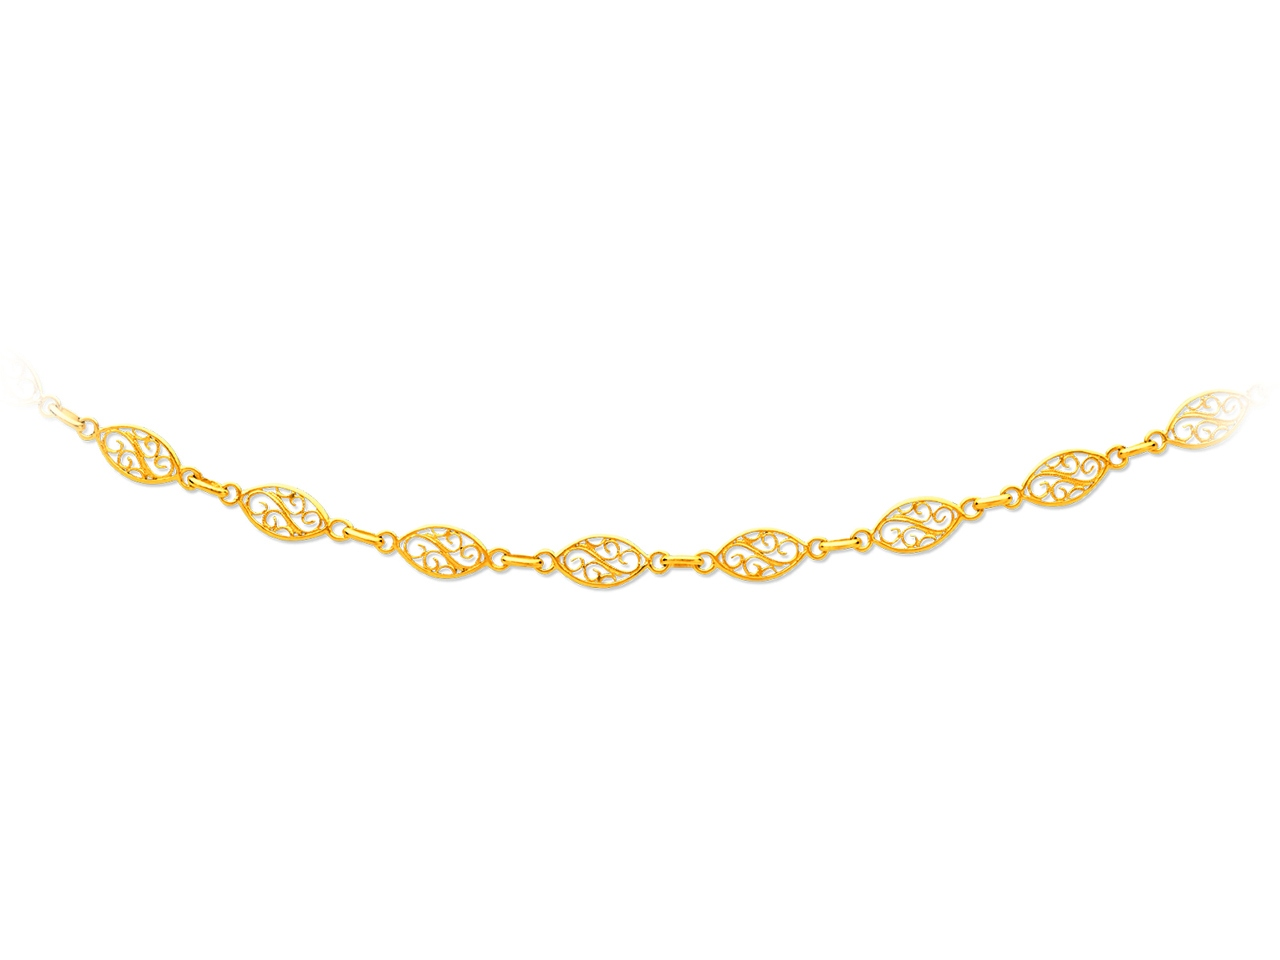 Collier maille filigrane, Or jaune 18k, 6,8 mm, 50 cm